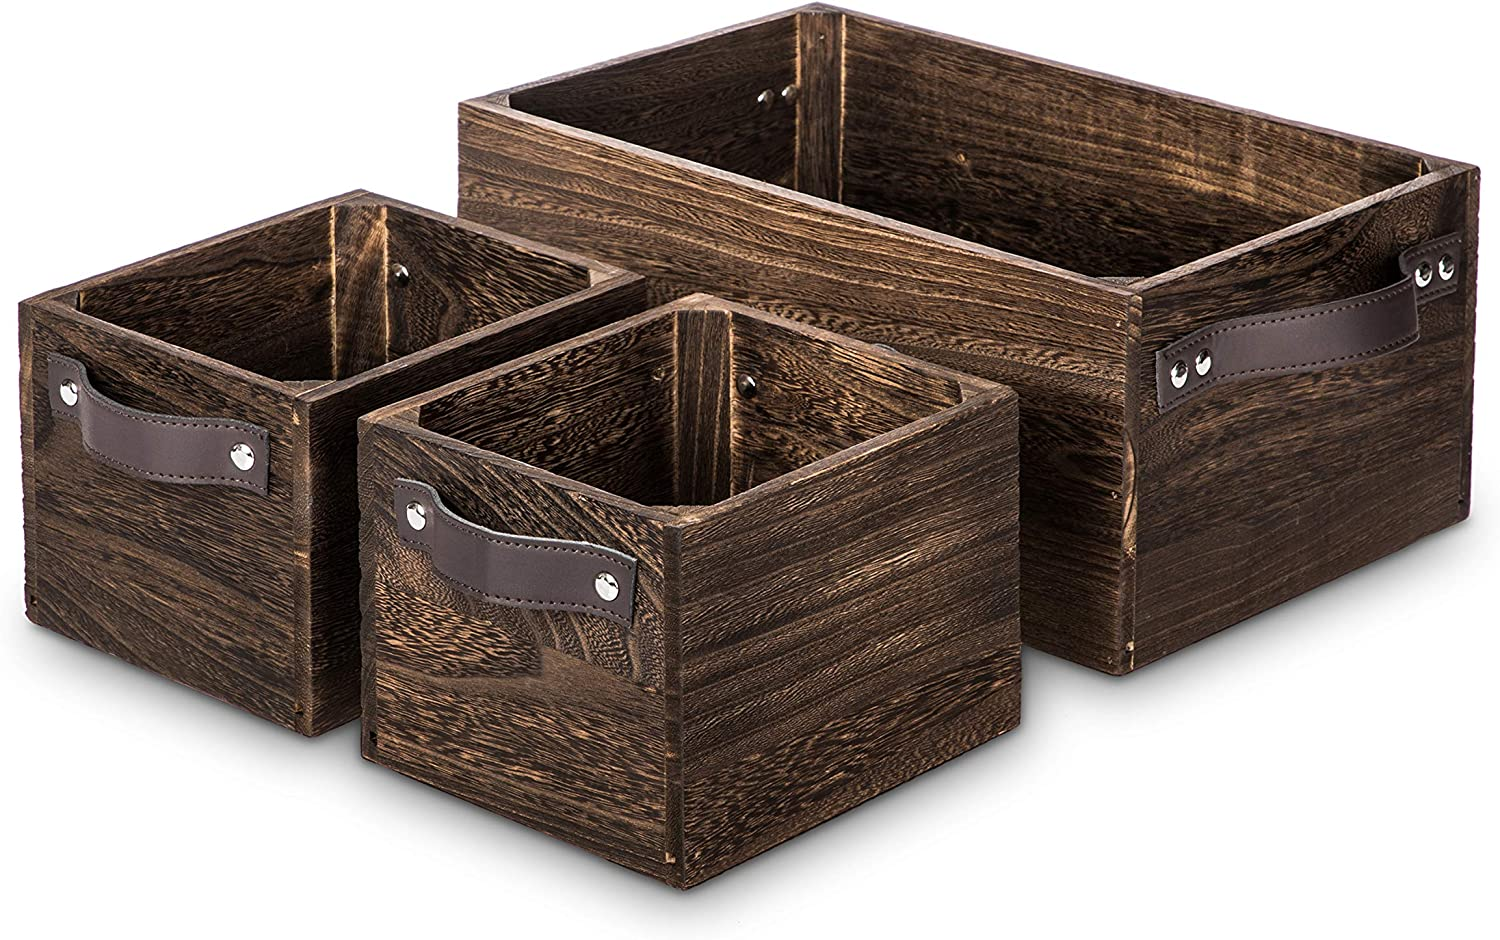 Home Zone Living Wooden Crate Storage Set, Stackable and Nested Set of 3 with PU Leather Handles